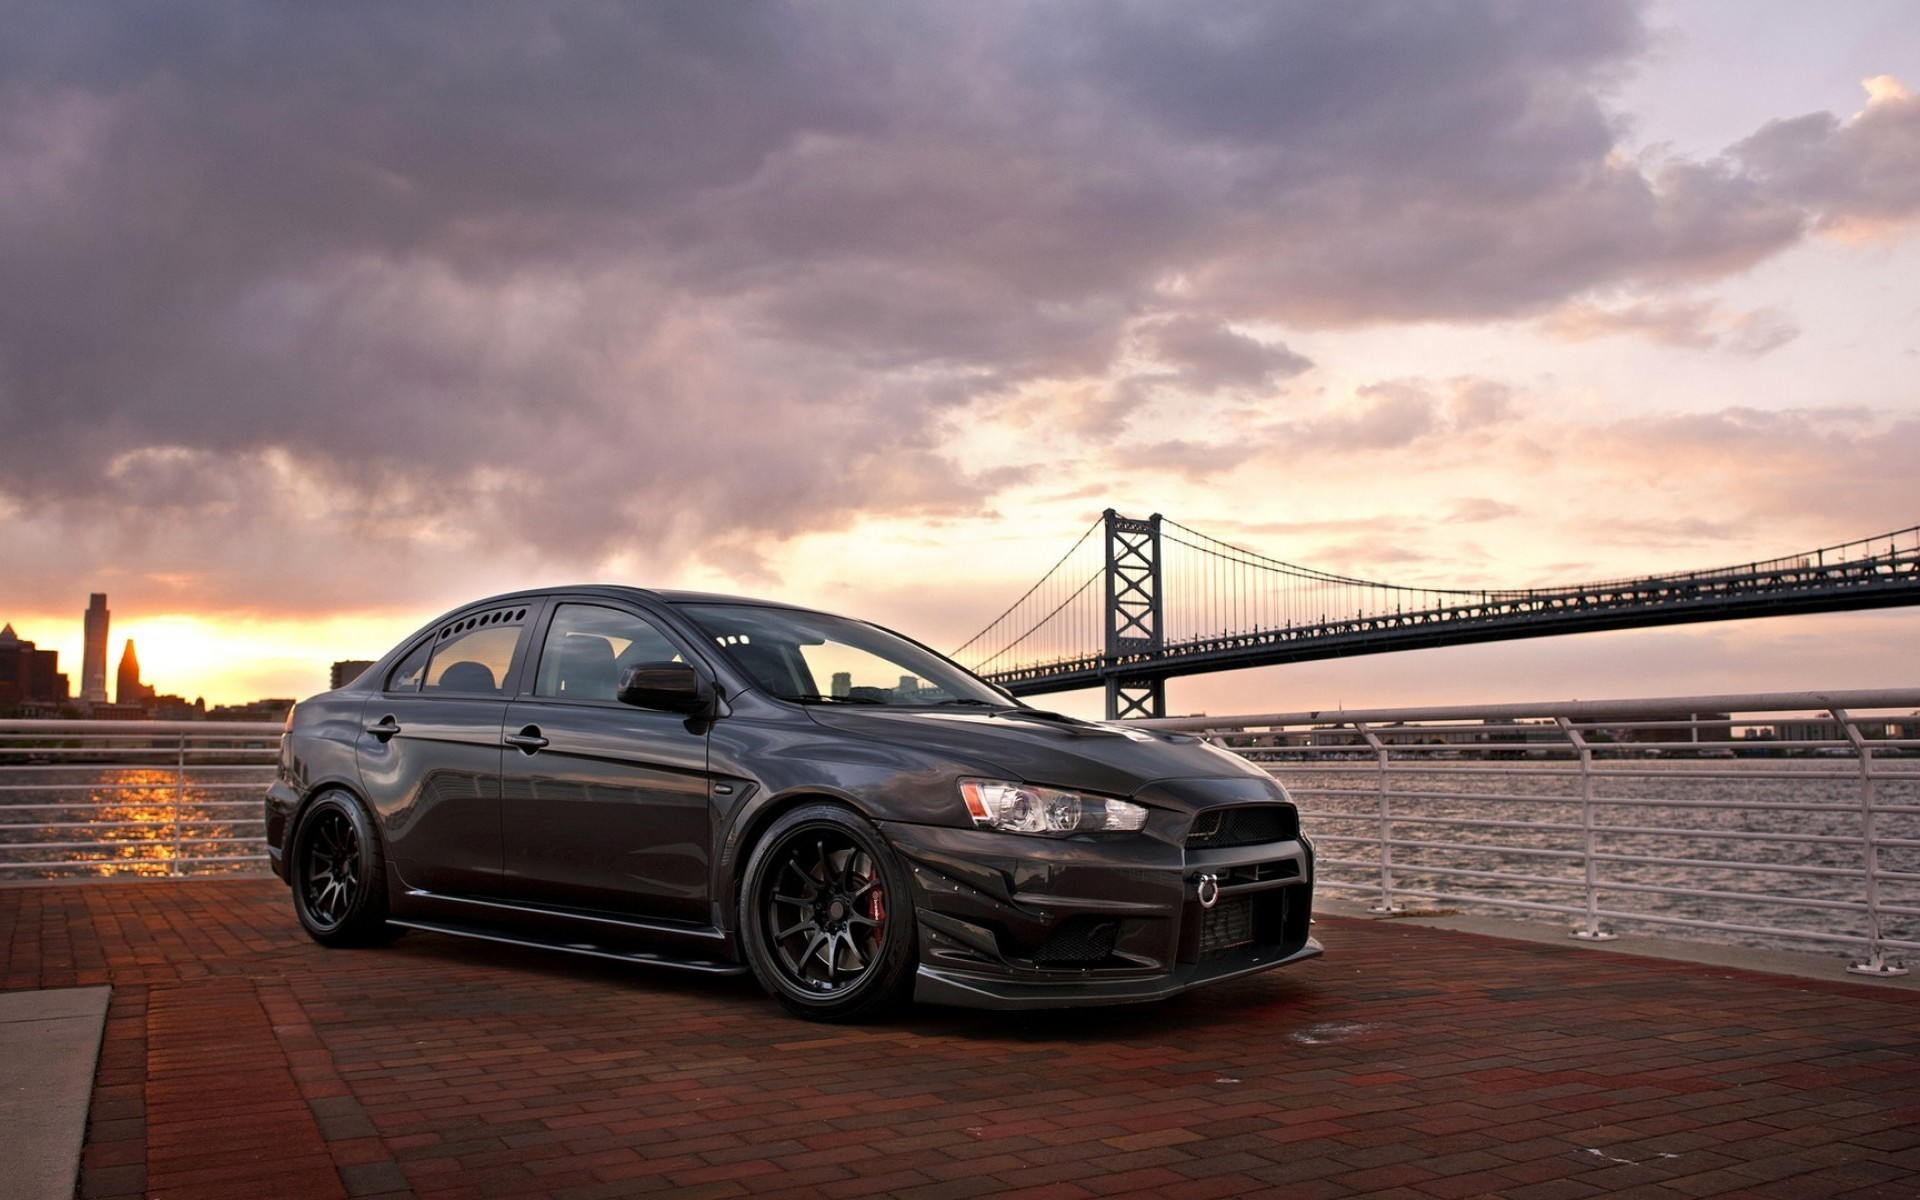 Mitsubishi Lancer Evolution X Wallpaper 71 images 1920x1200